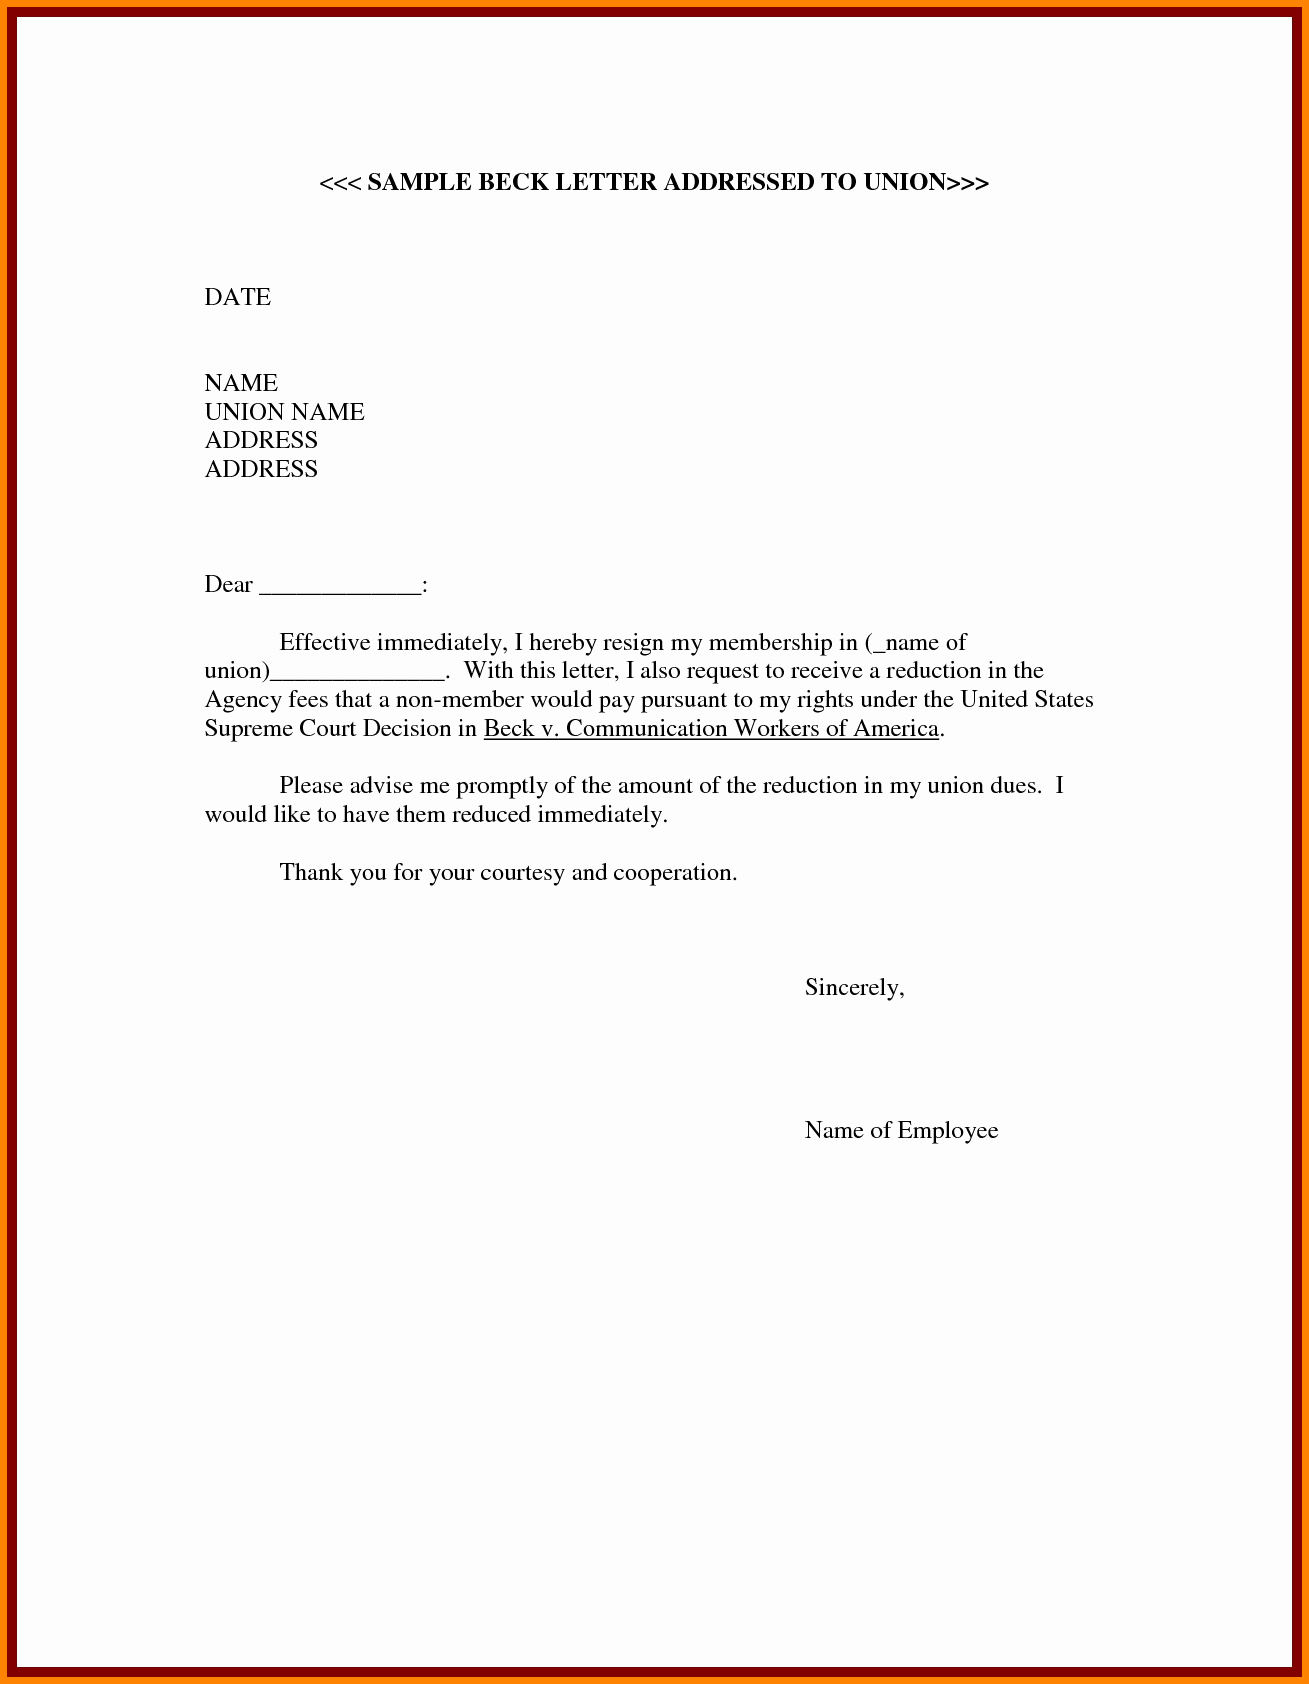 Resignation Letter Effective Immediately Elegant 6 Effective Immediately Resignation